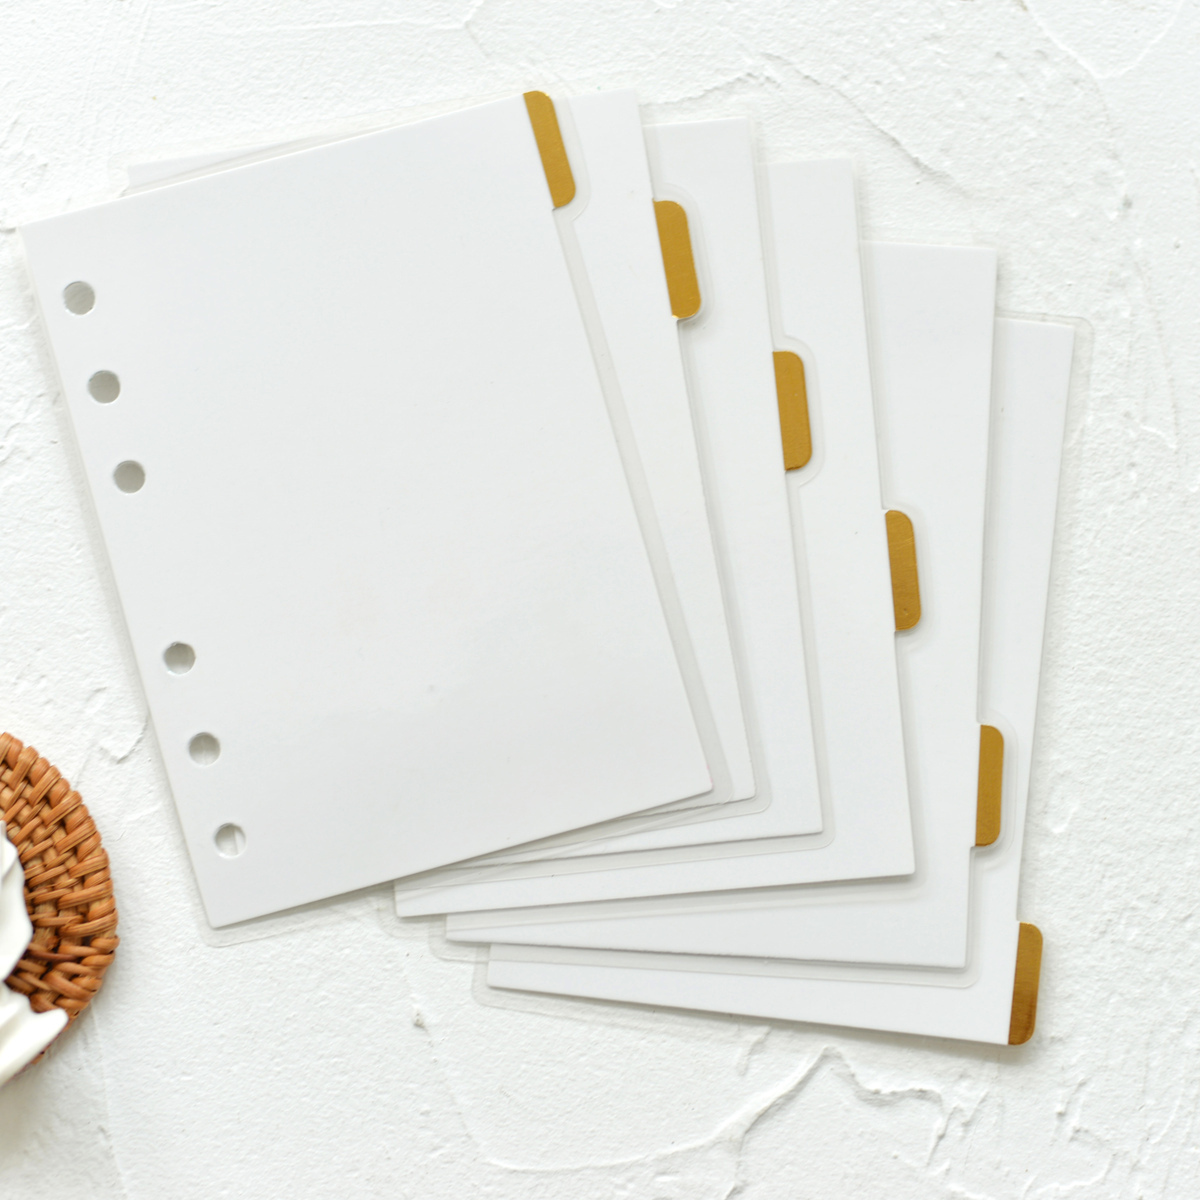 Fromthenon Foil Gold Index Pages Plastic Covered Dividers A5a6a7 Planner Refill Bookmarks For Lovedoki Notebook Cute Stationery